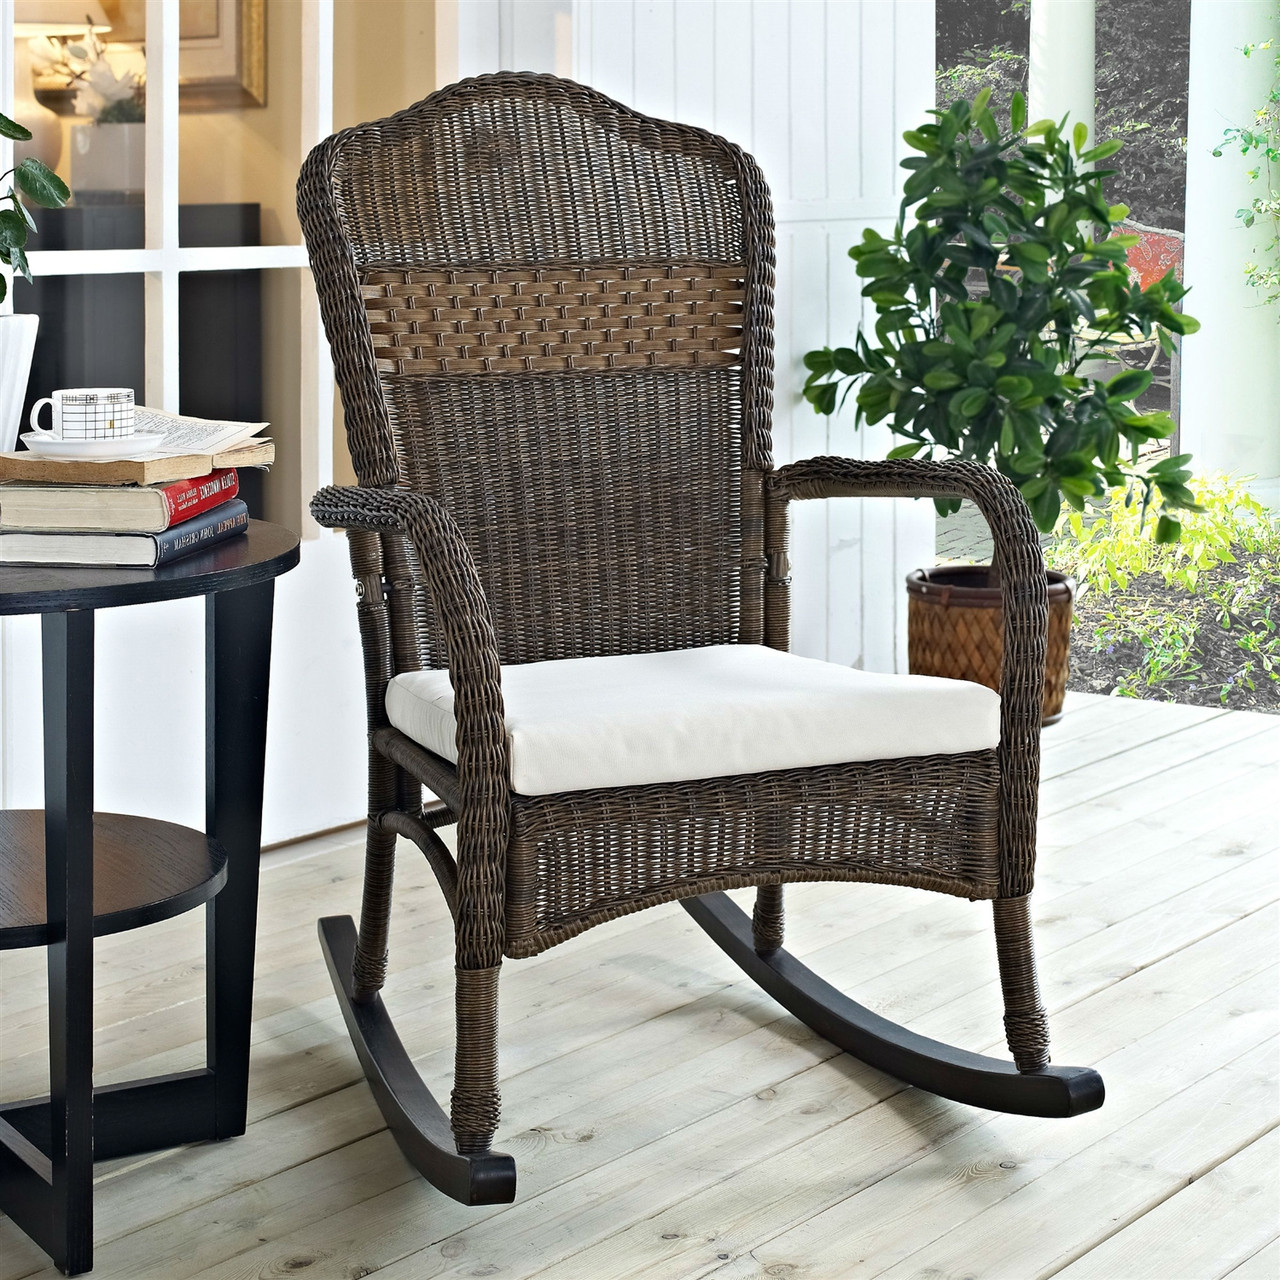 Prime Indoor Outdoor Patio Porch Mocha Wicker Rocking Chair Beige Cushion Spiritservingveterans Wood Chair Design Ideas Spiritservingveteransorg